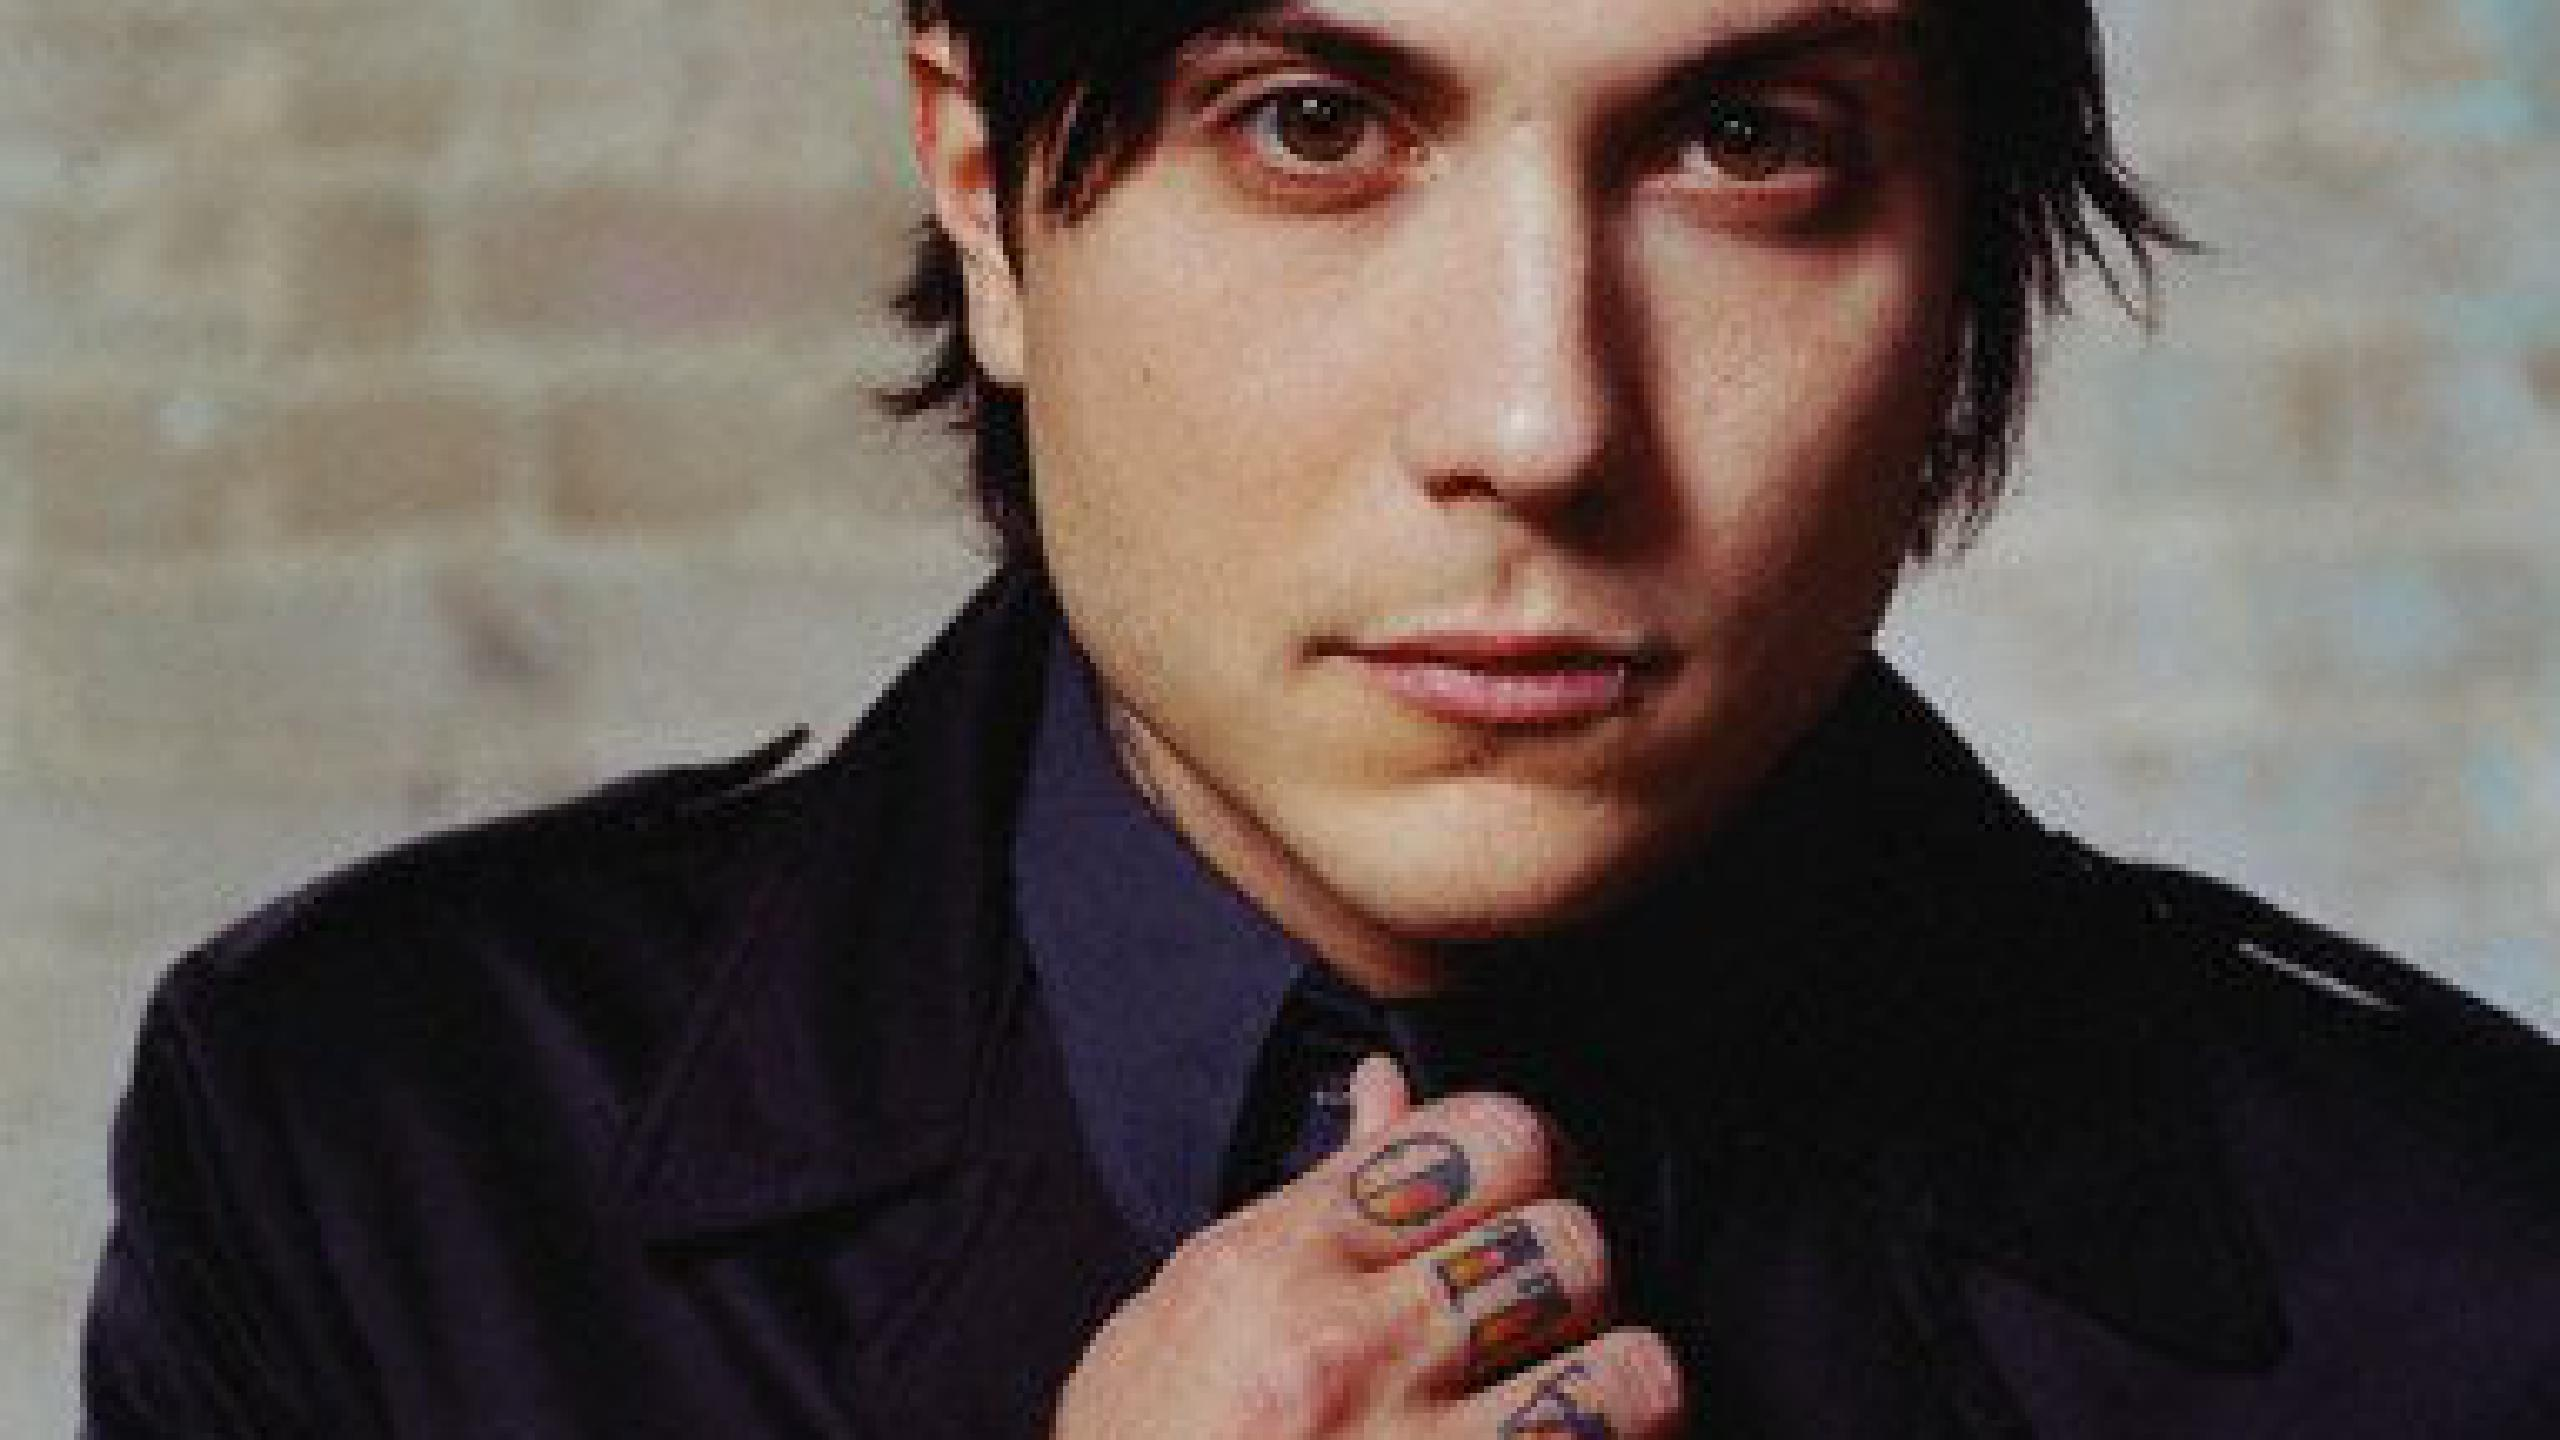 Frank Iero Tour 2020 Frank Iero tour dates 2019 2020. Frank Iero tickets and concerts